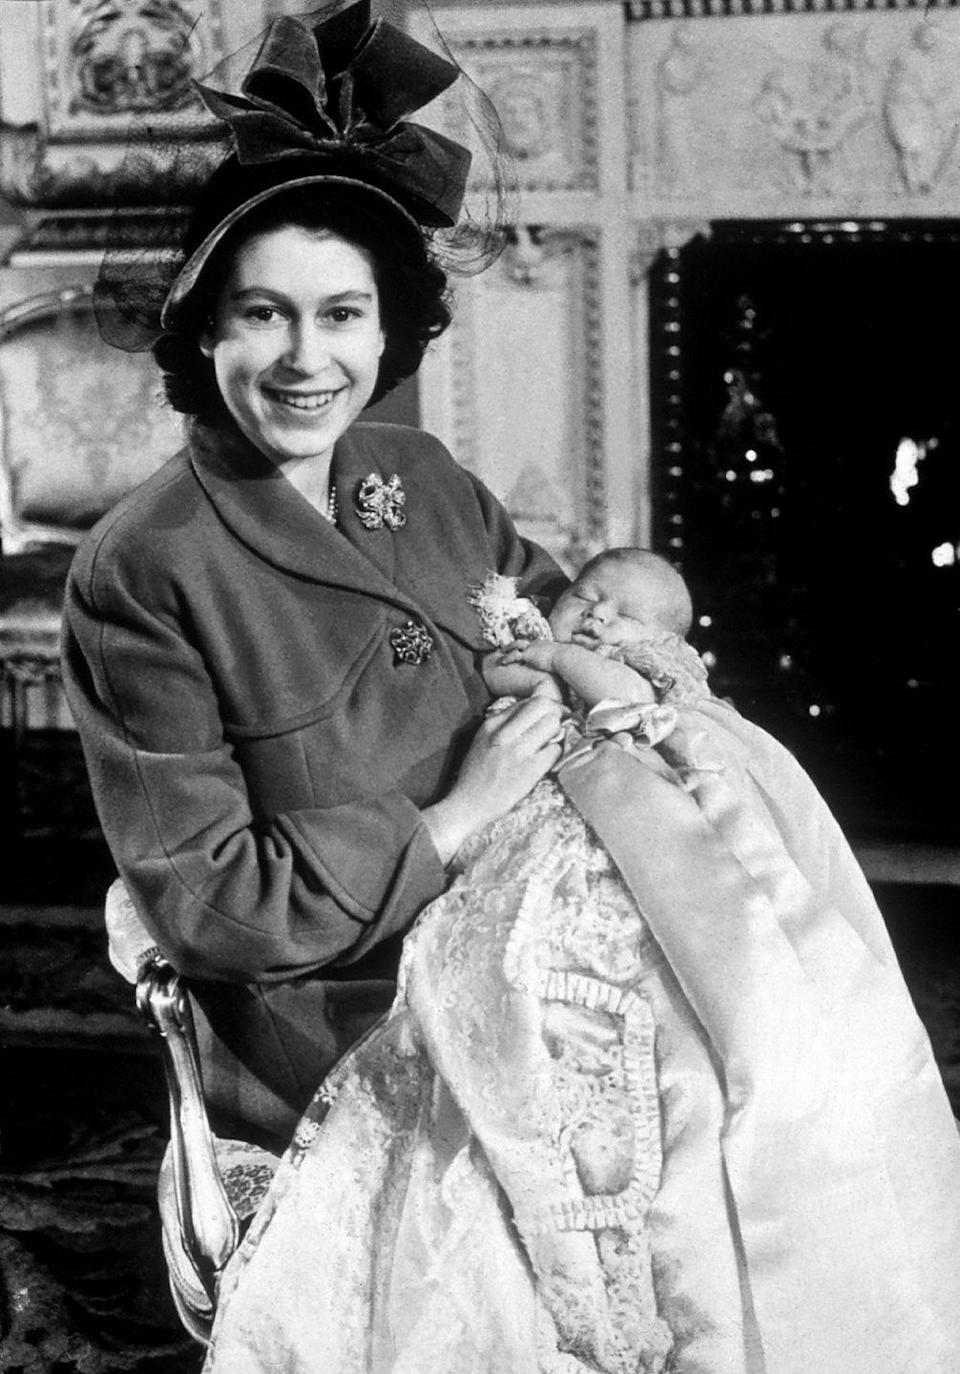 """<p>The Prince of Wales was born at Buckingham Palace on the evening of November 14, 1948. Princess Elizabeth was just 22 at the time, and she was reportedly <a href=""""http://www.dailymail.co.uk/femail/article-5082919/What-Philip-exclaimed-Queen-Charles-born.html"""" rel=""""nofollow noopener"""" target=""""_blank"""" data-ylk=""""slk:in labor for 30 hours"""" class=""""link rapid-noclick-resp"""">in labor for 30 hours</a> before giving birth by Caesarean section. But her husband, Prince Philip, was not present. Instead, he was <a href=""""https://www.telegraph.co.uk/men/the-filter/10-things-might-not-know-prince-philip/"""" rel=""""nofollow noopener"""" target=""""_blank"""" data-ylk=""""slk:playing squash with his private secretary"""" class=""""link rapid-noclick-resp"""">playing squash with his private secretary</a> in another part of the royal residence. When he got word of the birth, Philip ran up to the delivery room and, once the princess woke up from her anaesthetic, gave her a <a href=""""http://www.dailymail.co.uk/femail/article-5082919/What-Philip-exclaimed-Queen-Charles-born.html"""" rel=""""nofollow noopener"""" target=""""_blank"""" data-ylk=""""slk:bouquet of red roses and carnations"""" class=""""link rapid-noclick-resp"""">bouquet of red roses and carnations</a>. He also declared that Charles resembled """"a plum pudding."""" (Charles's birth was the <a href=""""https://timesmachine.nytimes.com/timesmachine/1948/11/06/86757376.html?action=click&contentCollection=Archives&module=ArticleEndCTA®ion=ArchiveBody&pgtype=article&pageNumber=9"""" rel=""""nofollow noopener"""" target=""""_blank"""" data-ylk=""""slk:first royal birth not attended by the British Home Secretary"""" class=""""link rapid-noclick-resp"""">first royal birth not attended by the British Home Secretary</a>, who in earlier times was required to be present to witness and verify the births of royal children.)</p><p><em>Left</em>: Her Majesty Queen Elizabeth II (pictured when she was Princess Elizabeth) poses with her first baby Prince Charles at his Christening in 1948</p>"""